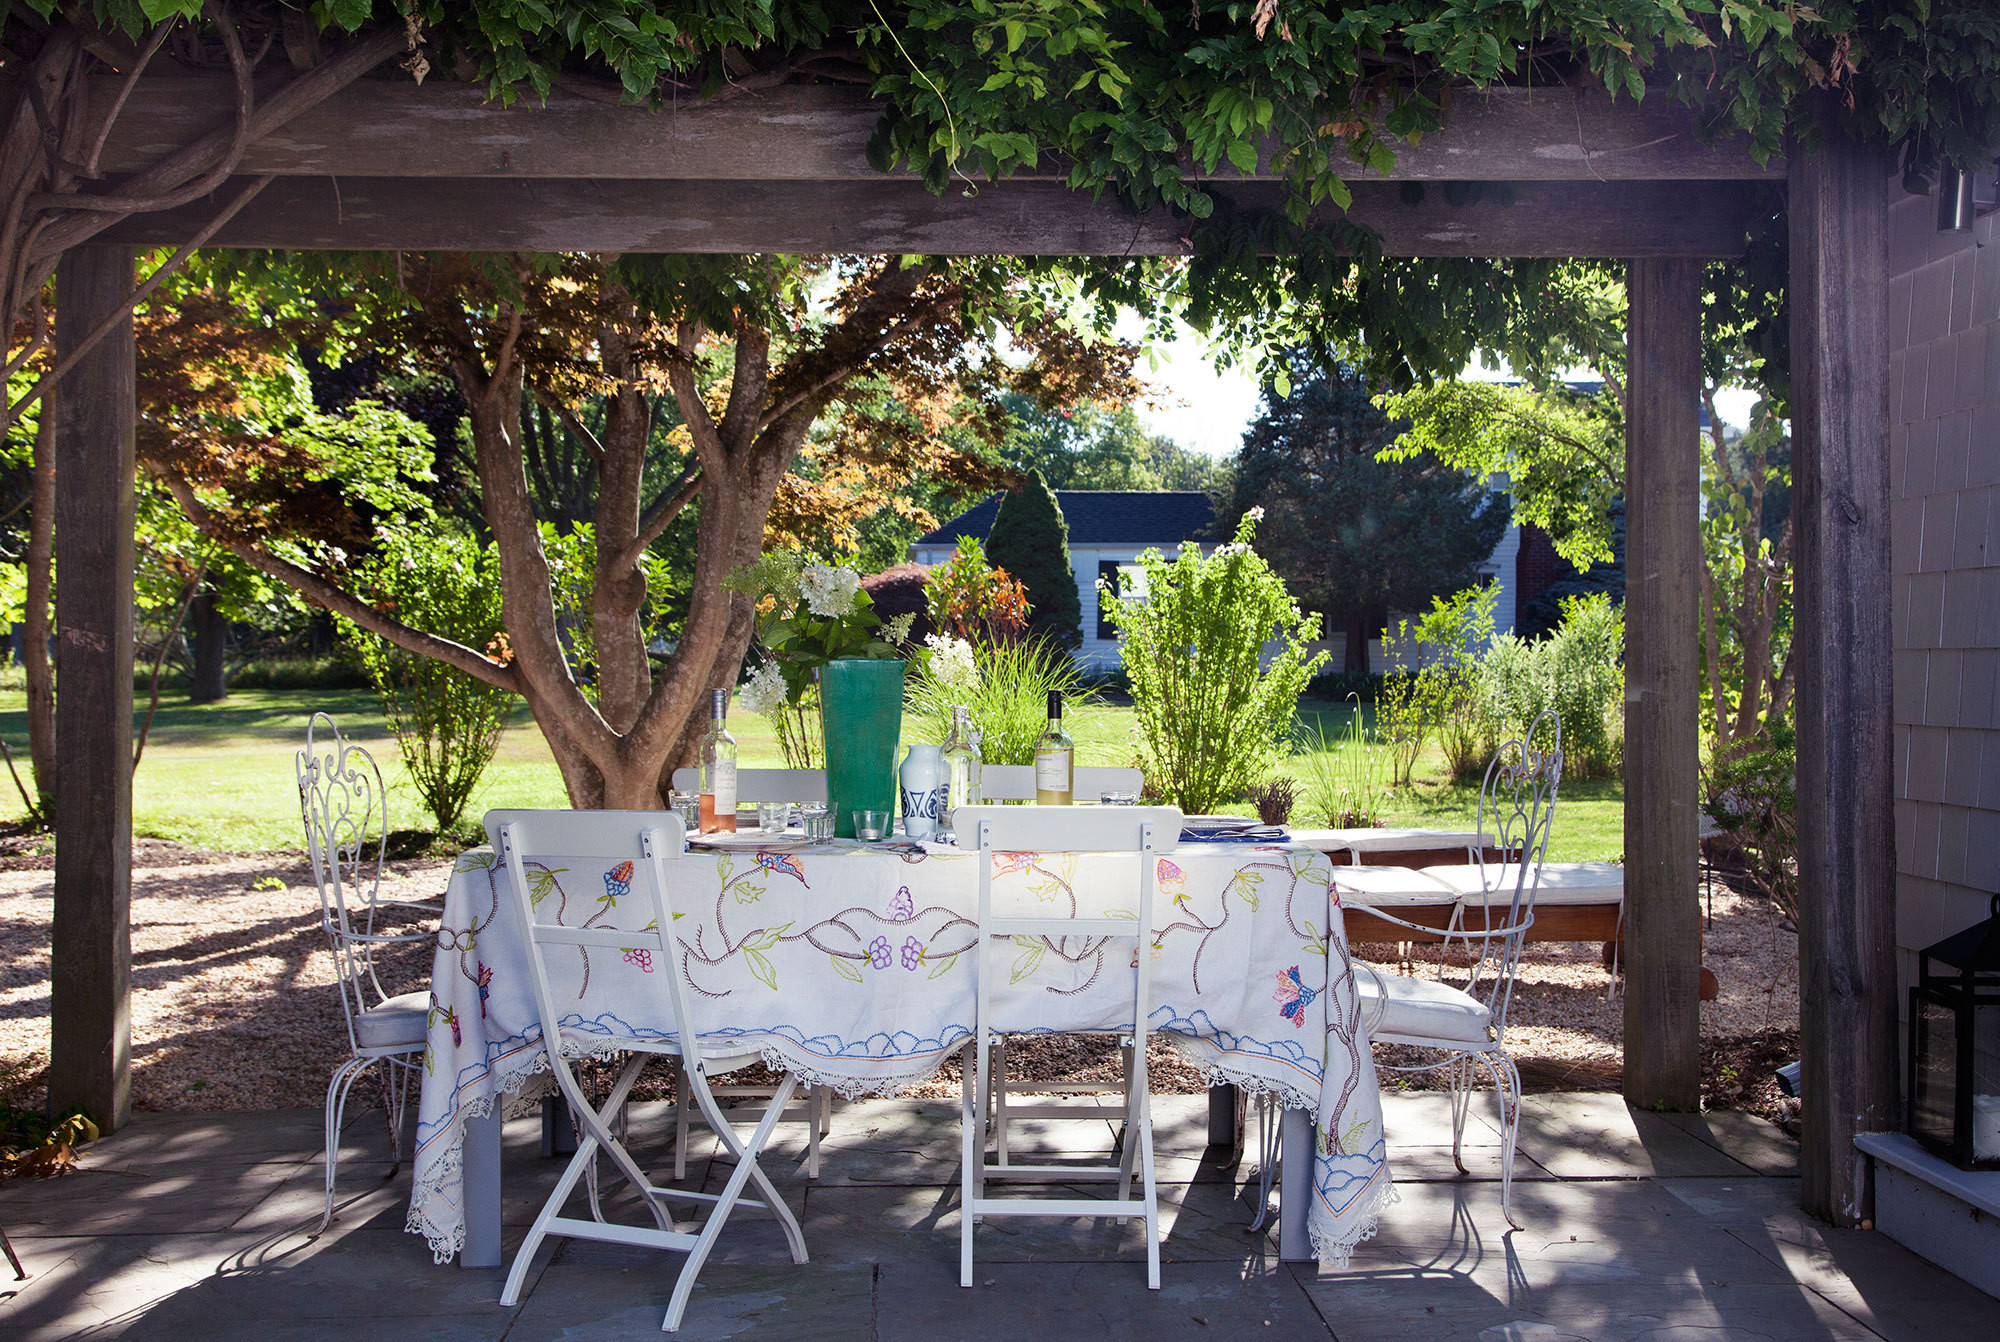 A trellis covered in wisteria vines provides a shady spot for casual meals outdoors.